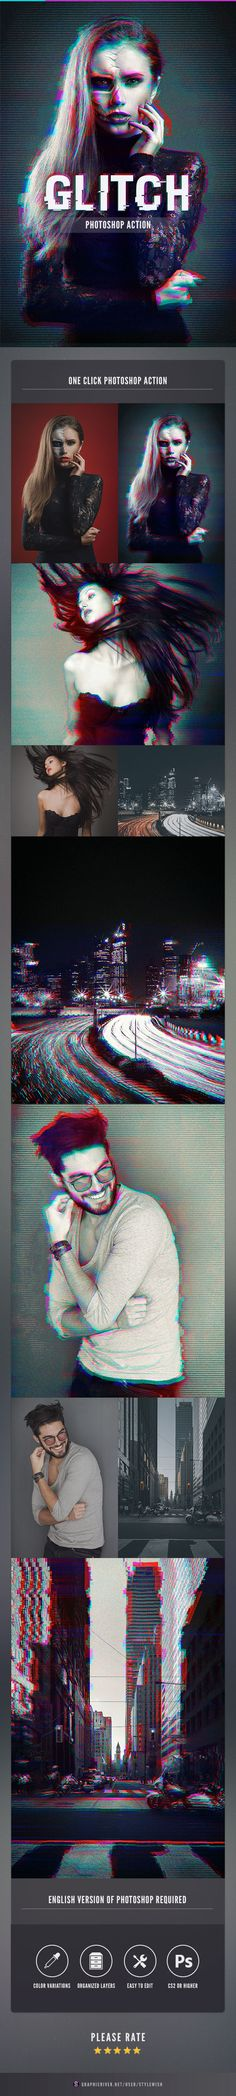 Glitch Photoshop Action - Download…